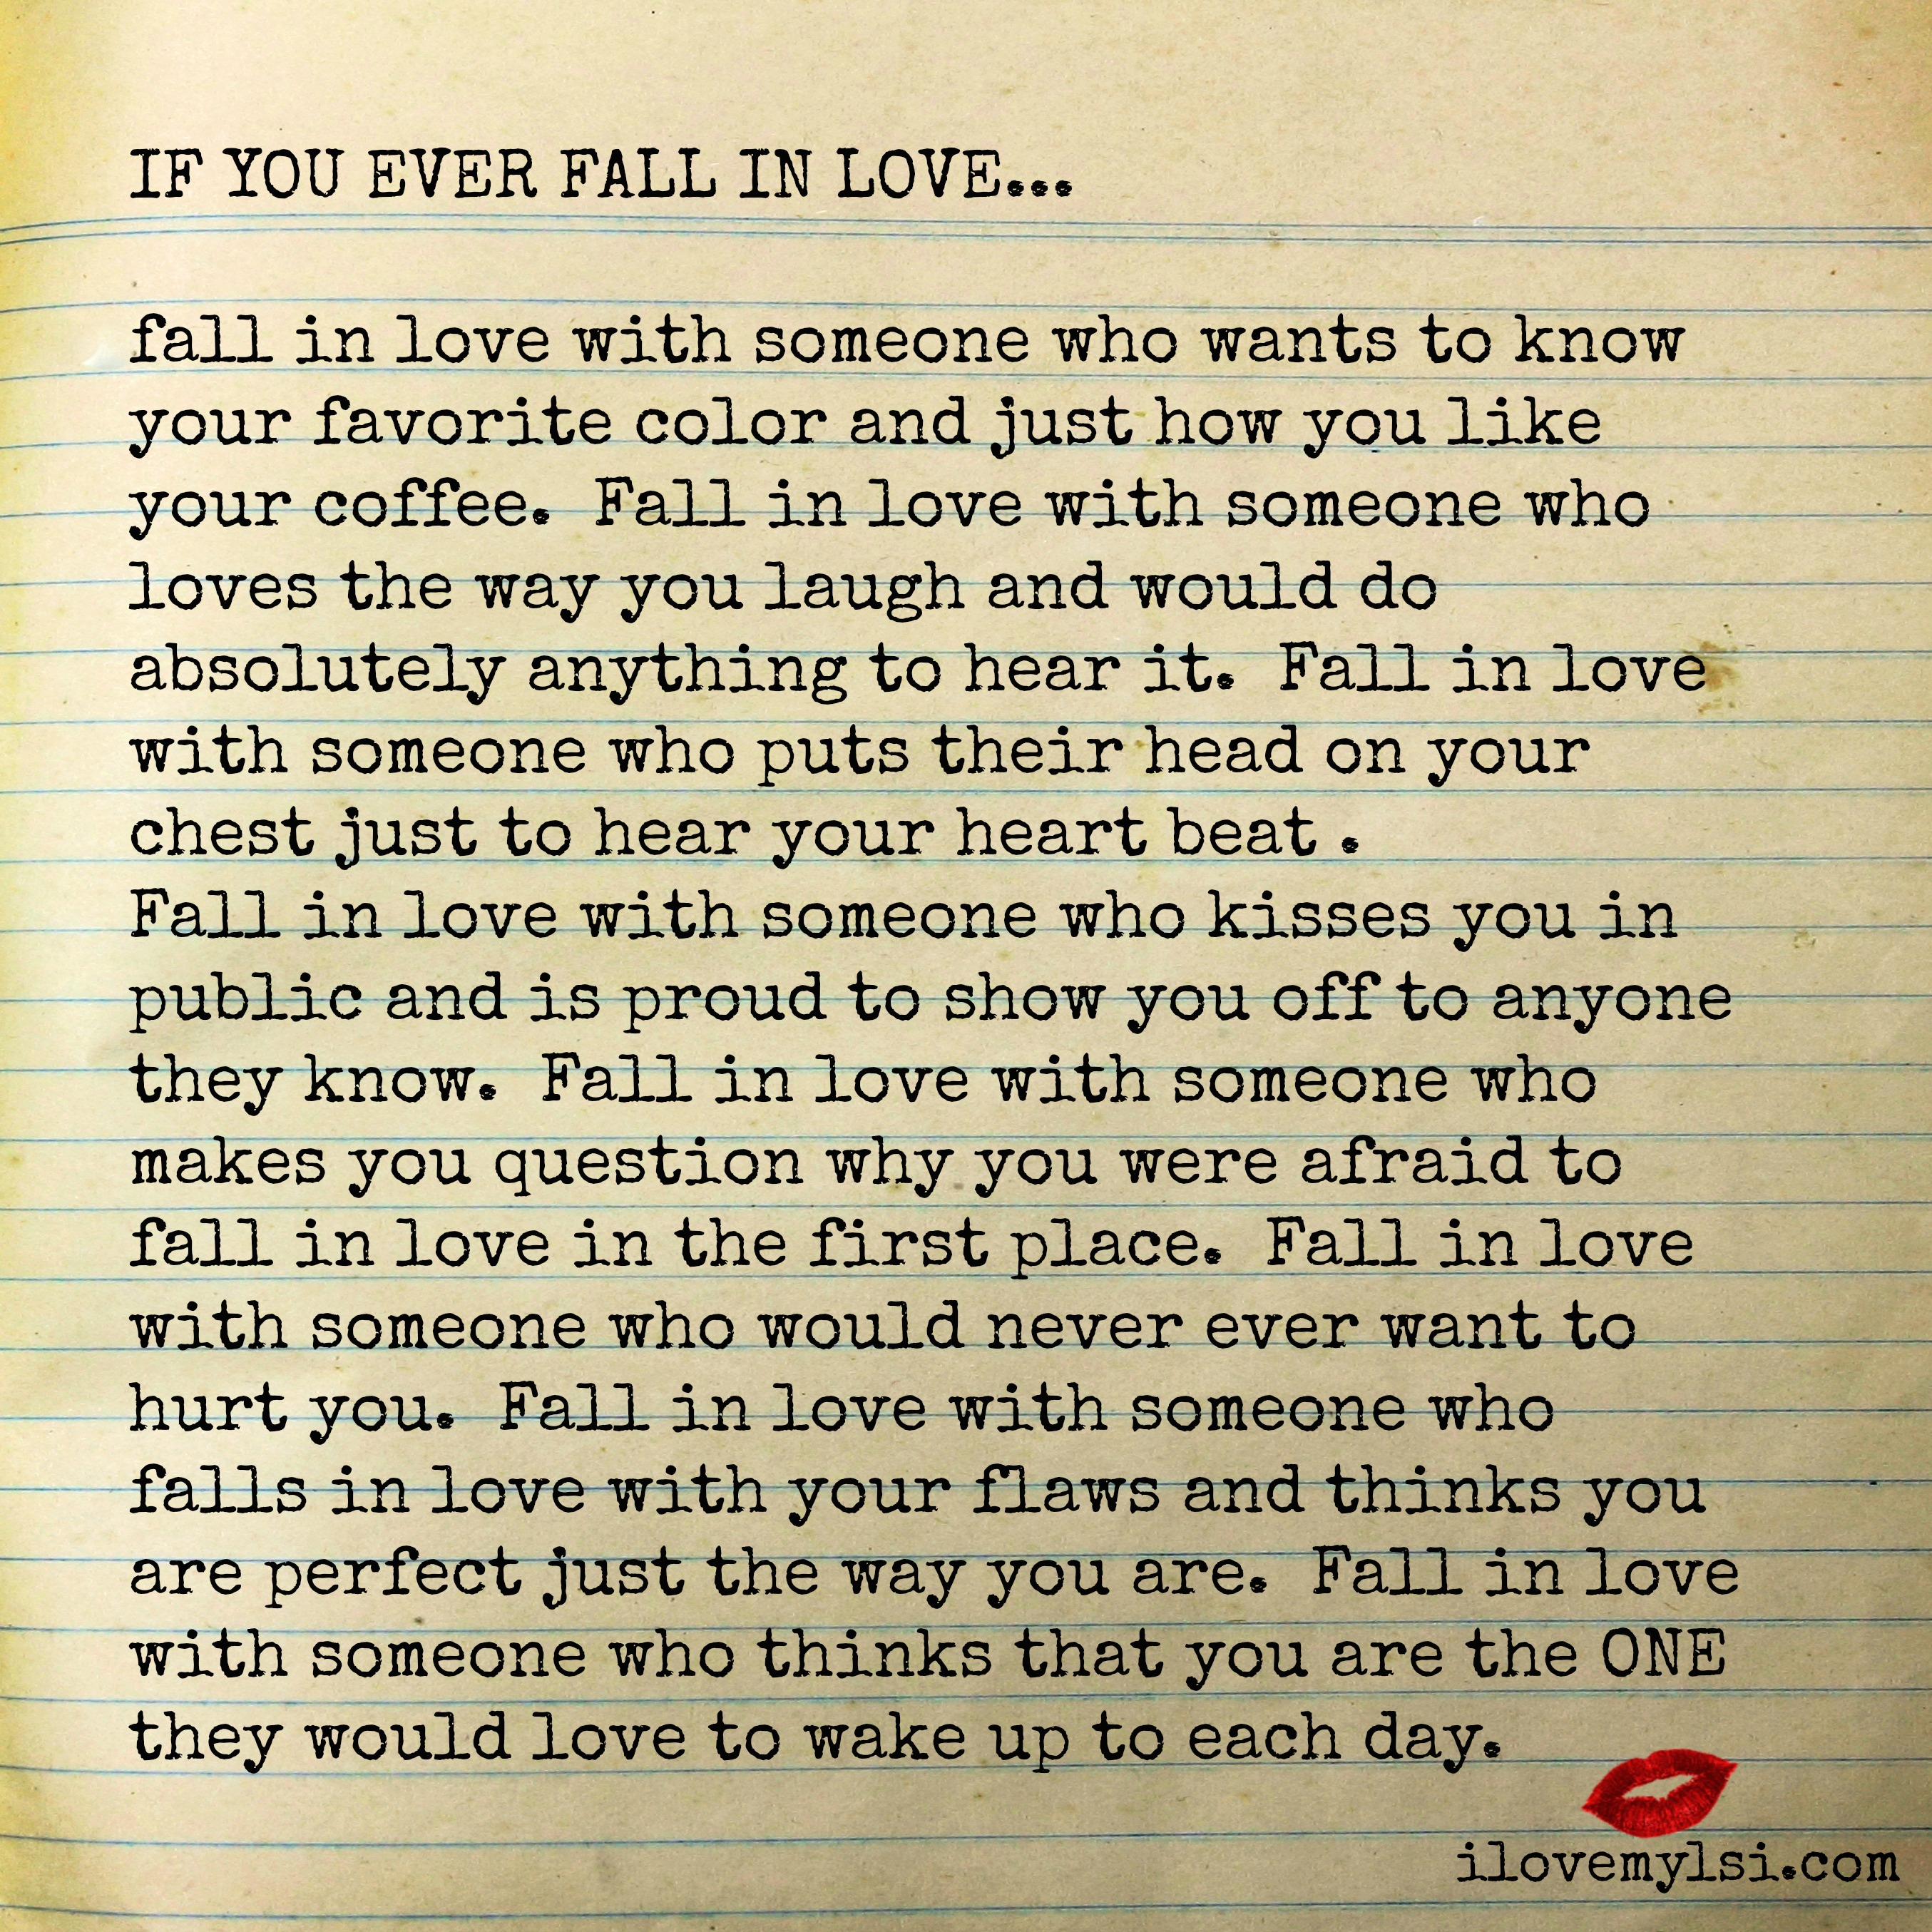 falling in love quotes archives i love my lsi